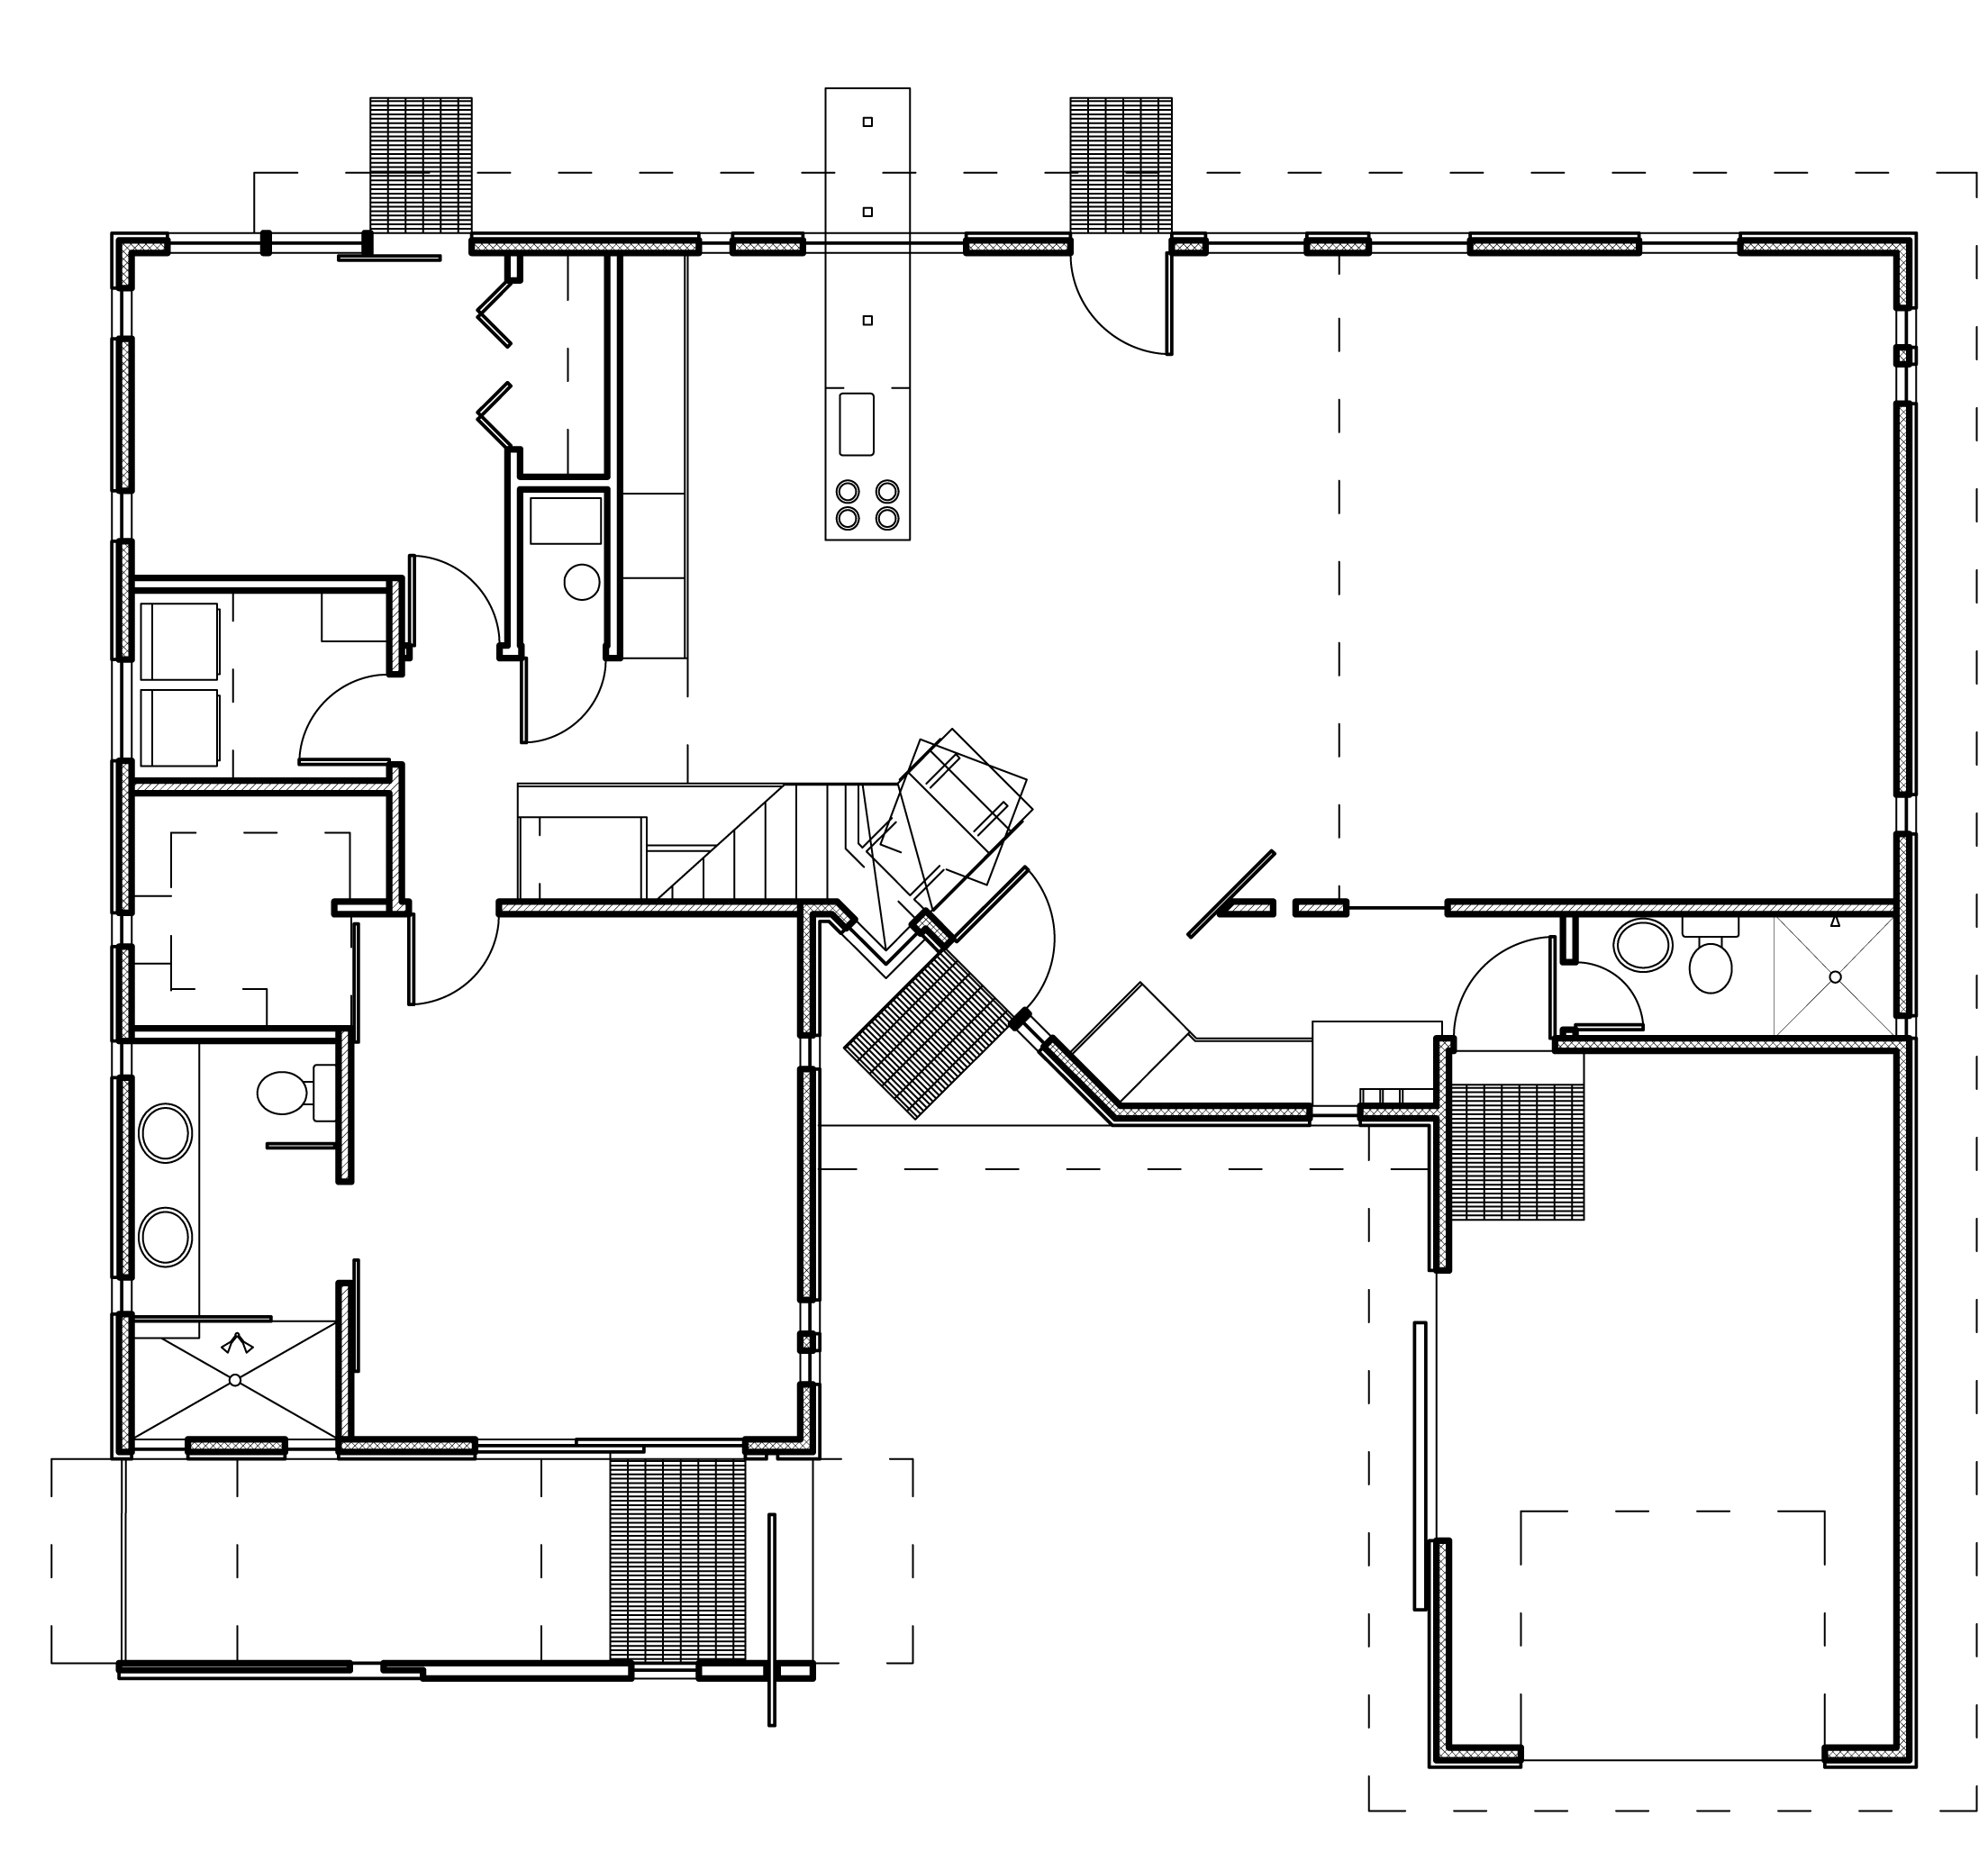 Home ideas Modern house floor plans